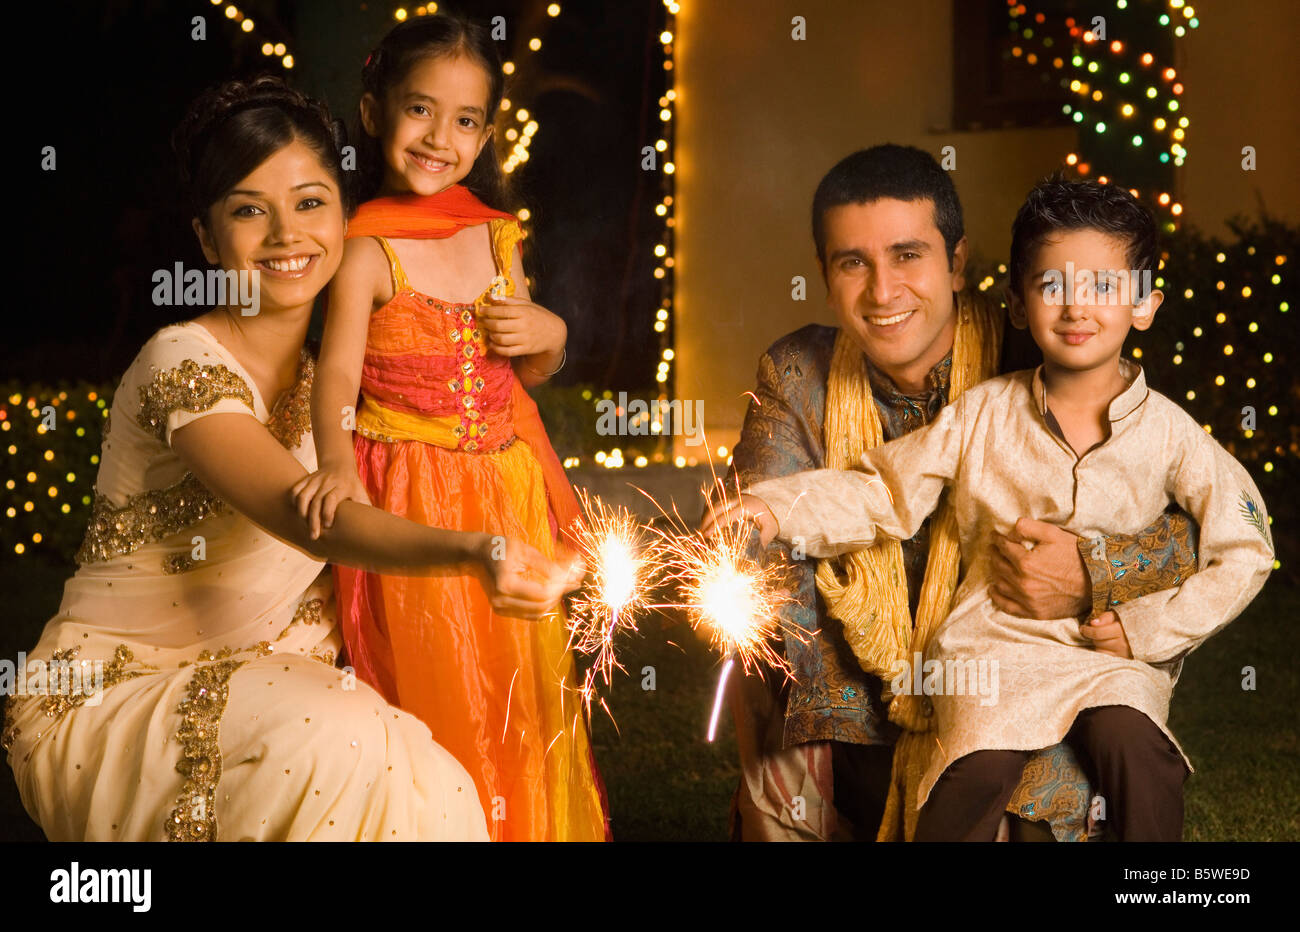 Family celebrating diwali - Stock Image